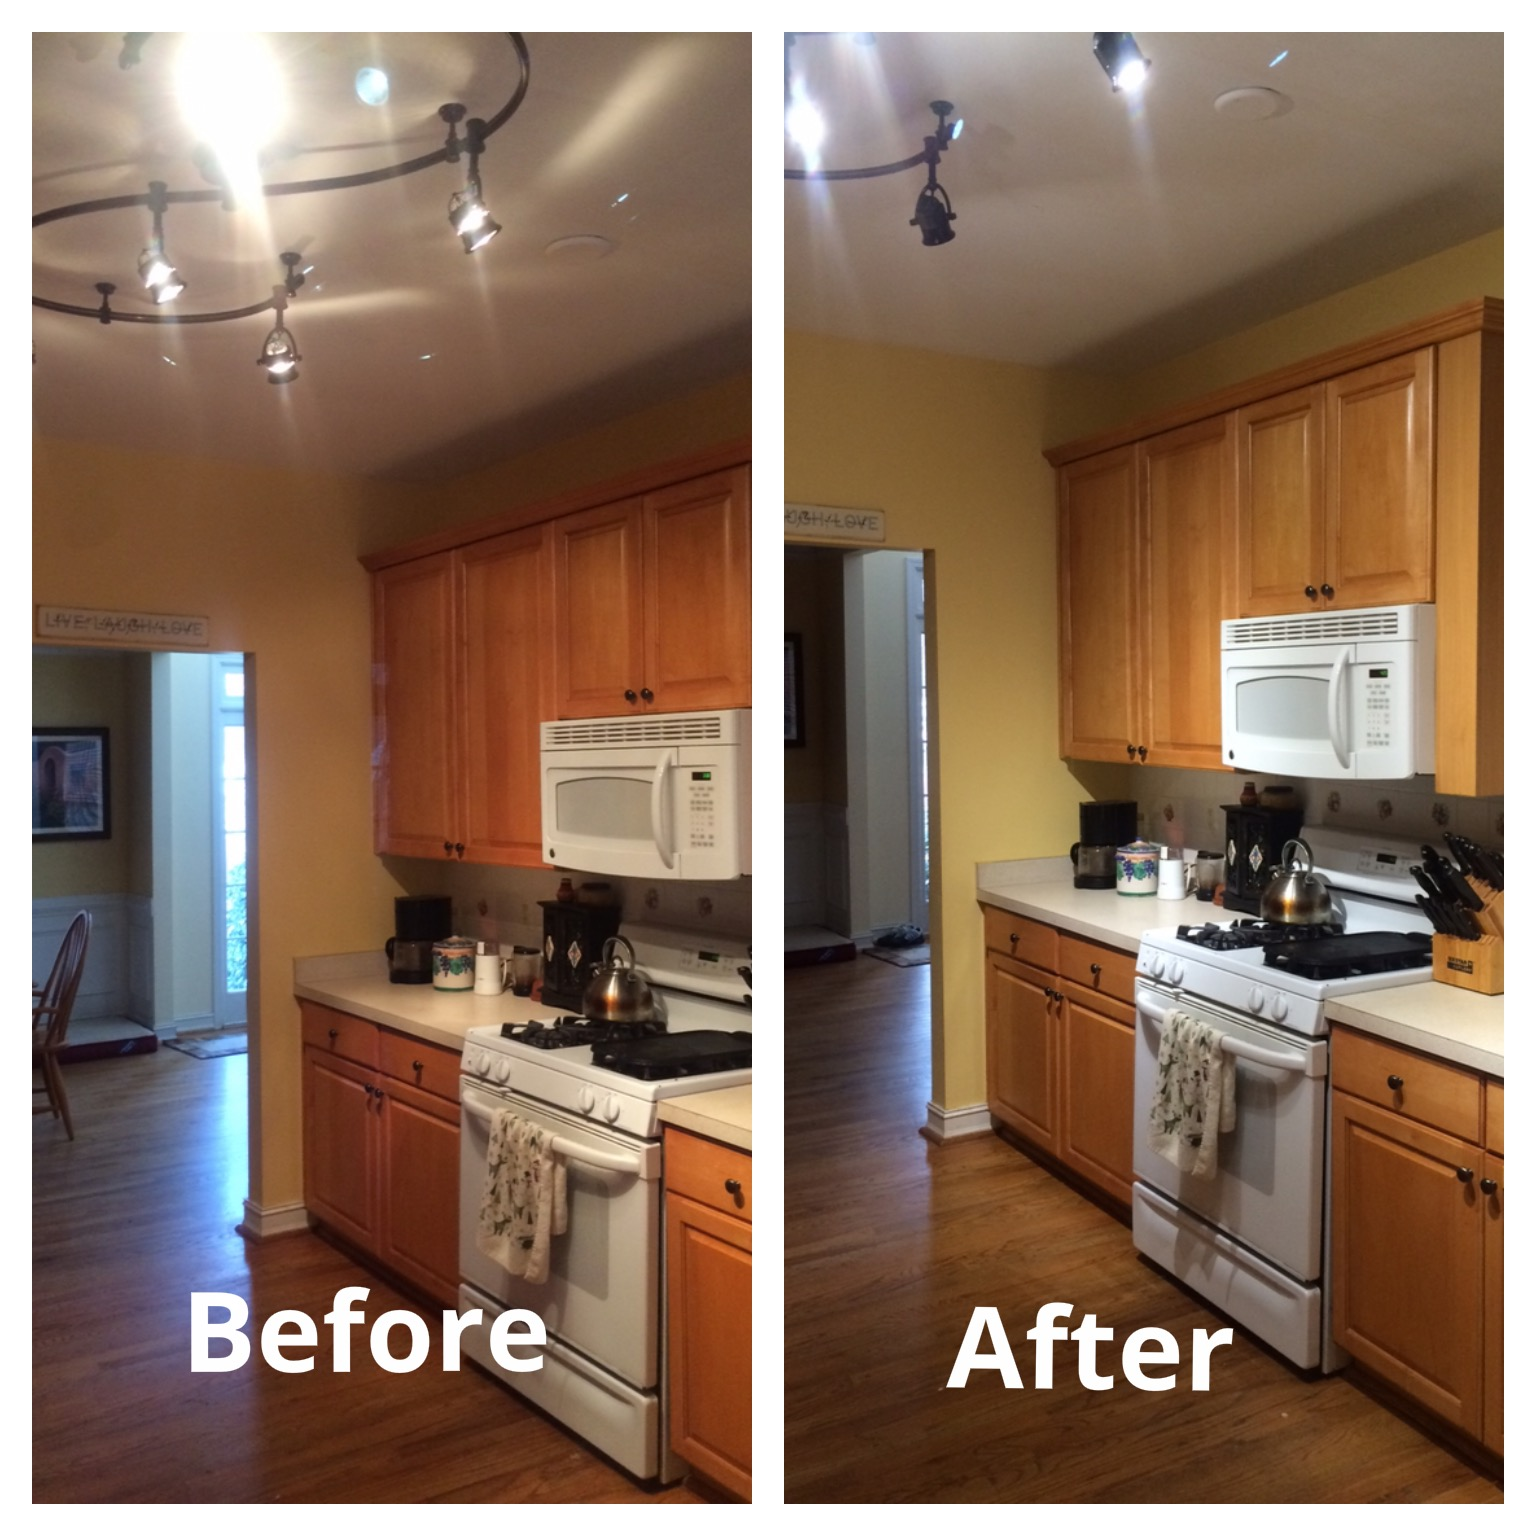 Led lights replace halogens in kitchen update energy water kitchen lights workwithnaturefo